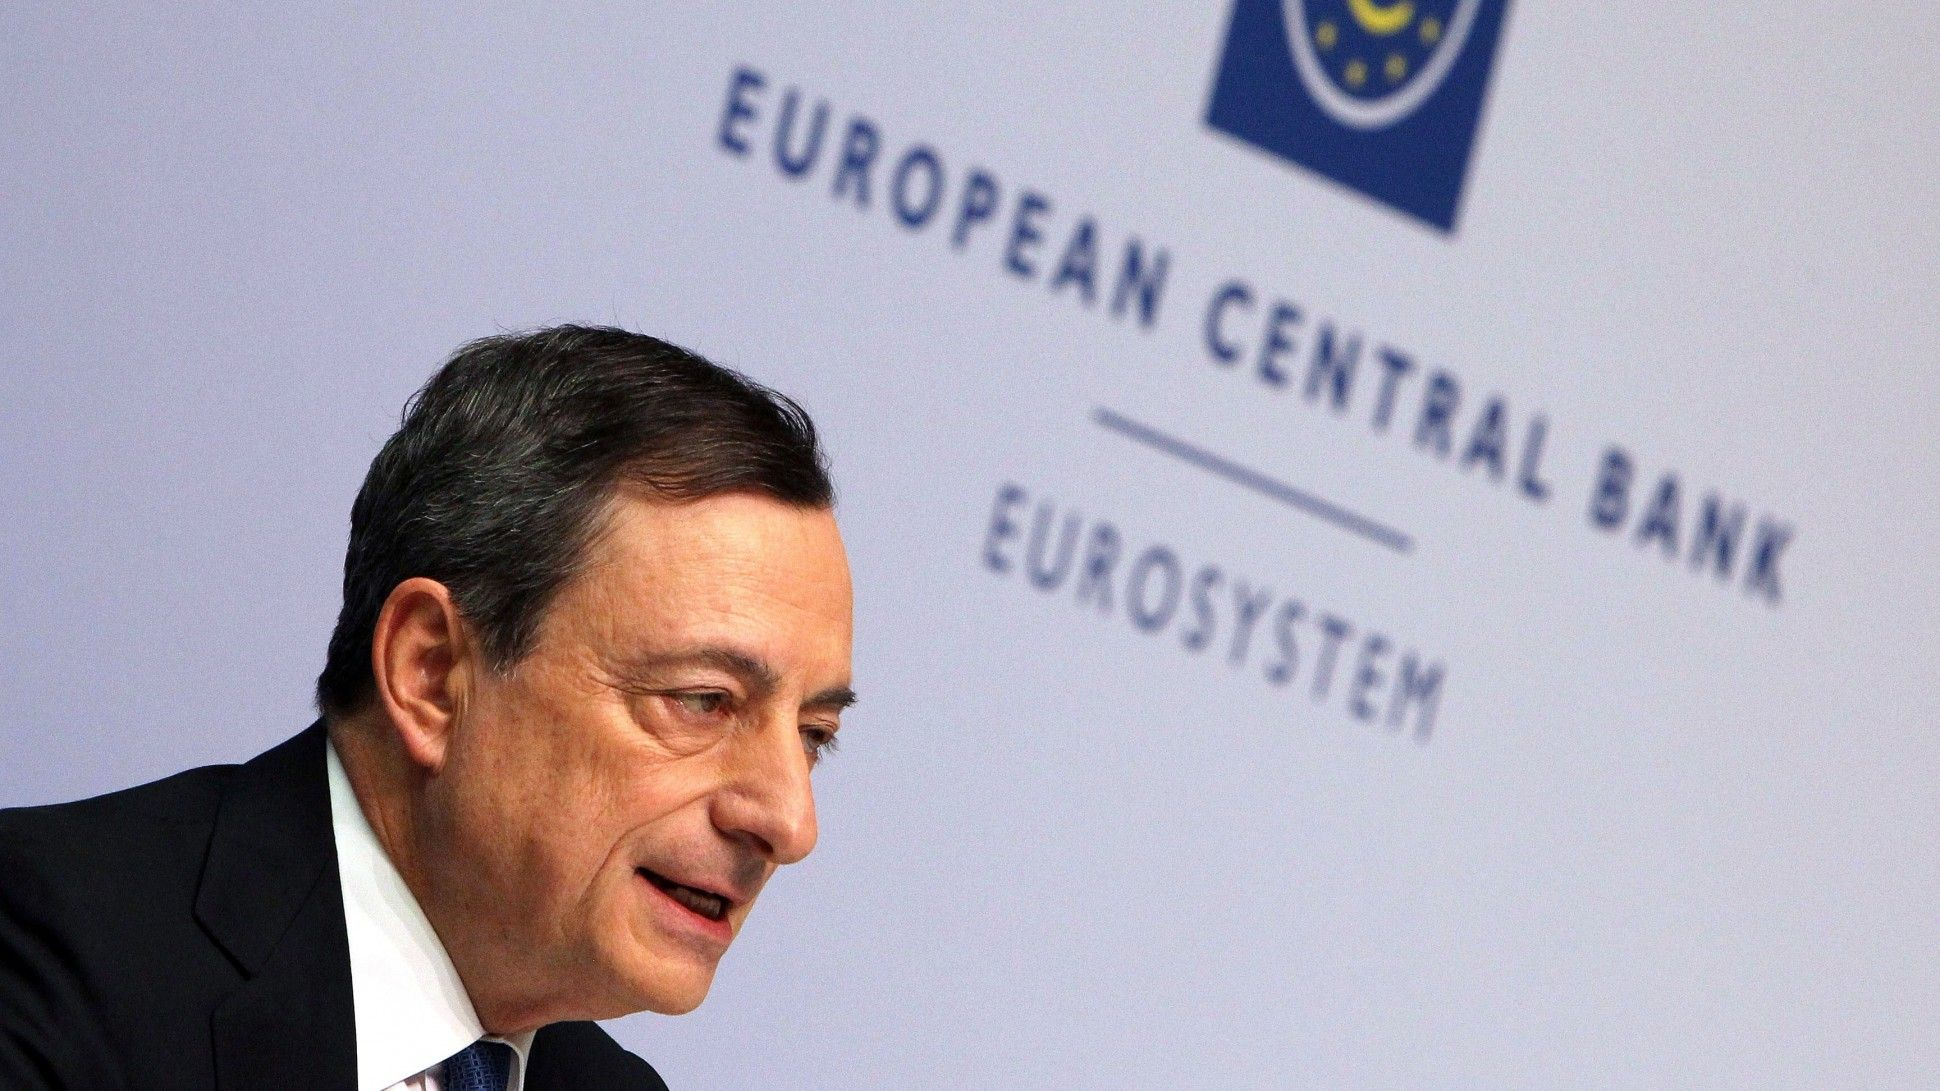 Draghi Points to 2019 as Time for Inflation Mission Accomplished